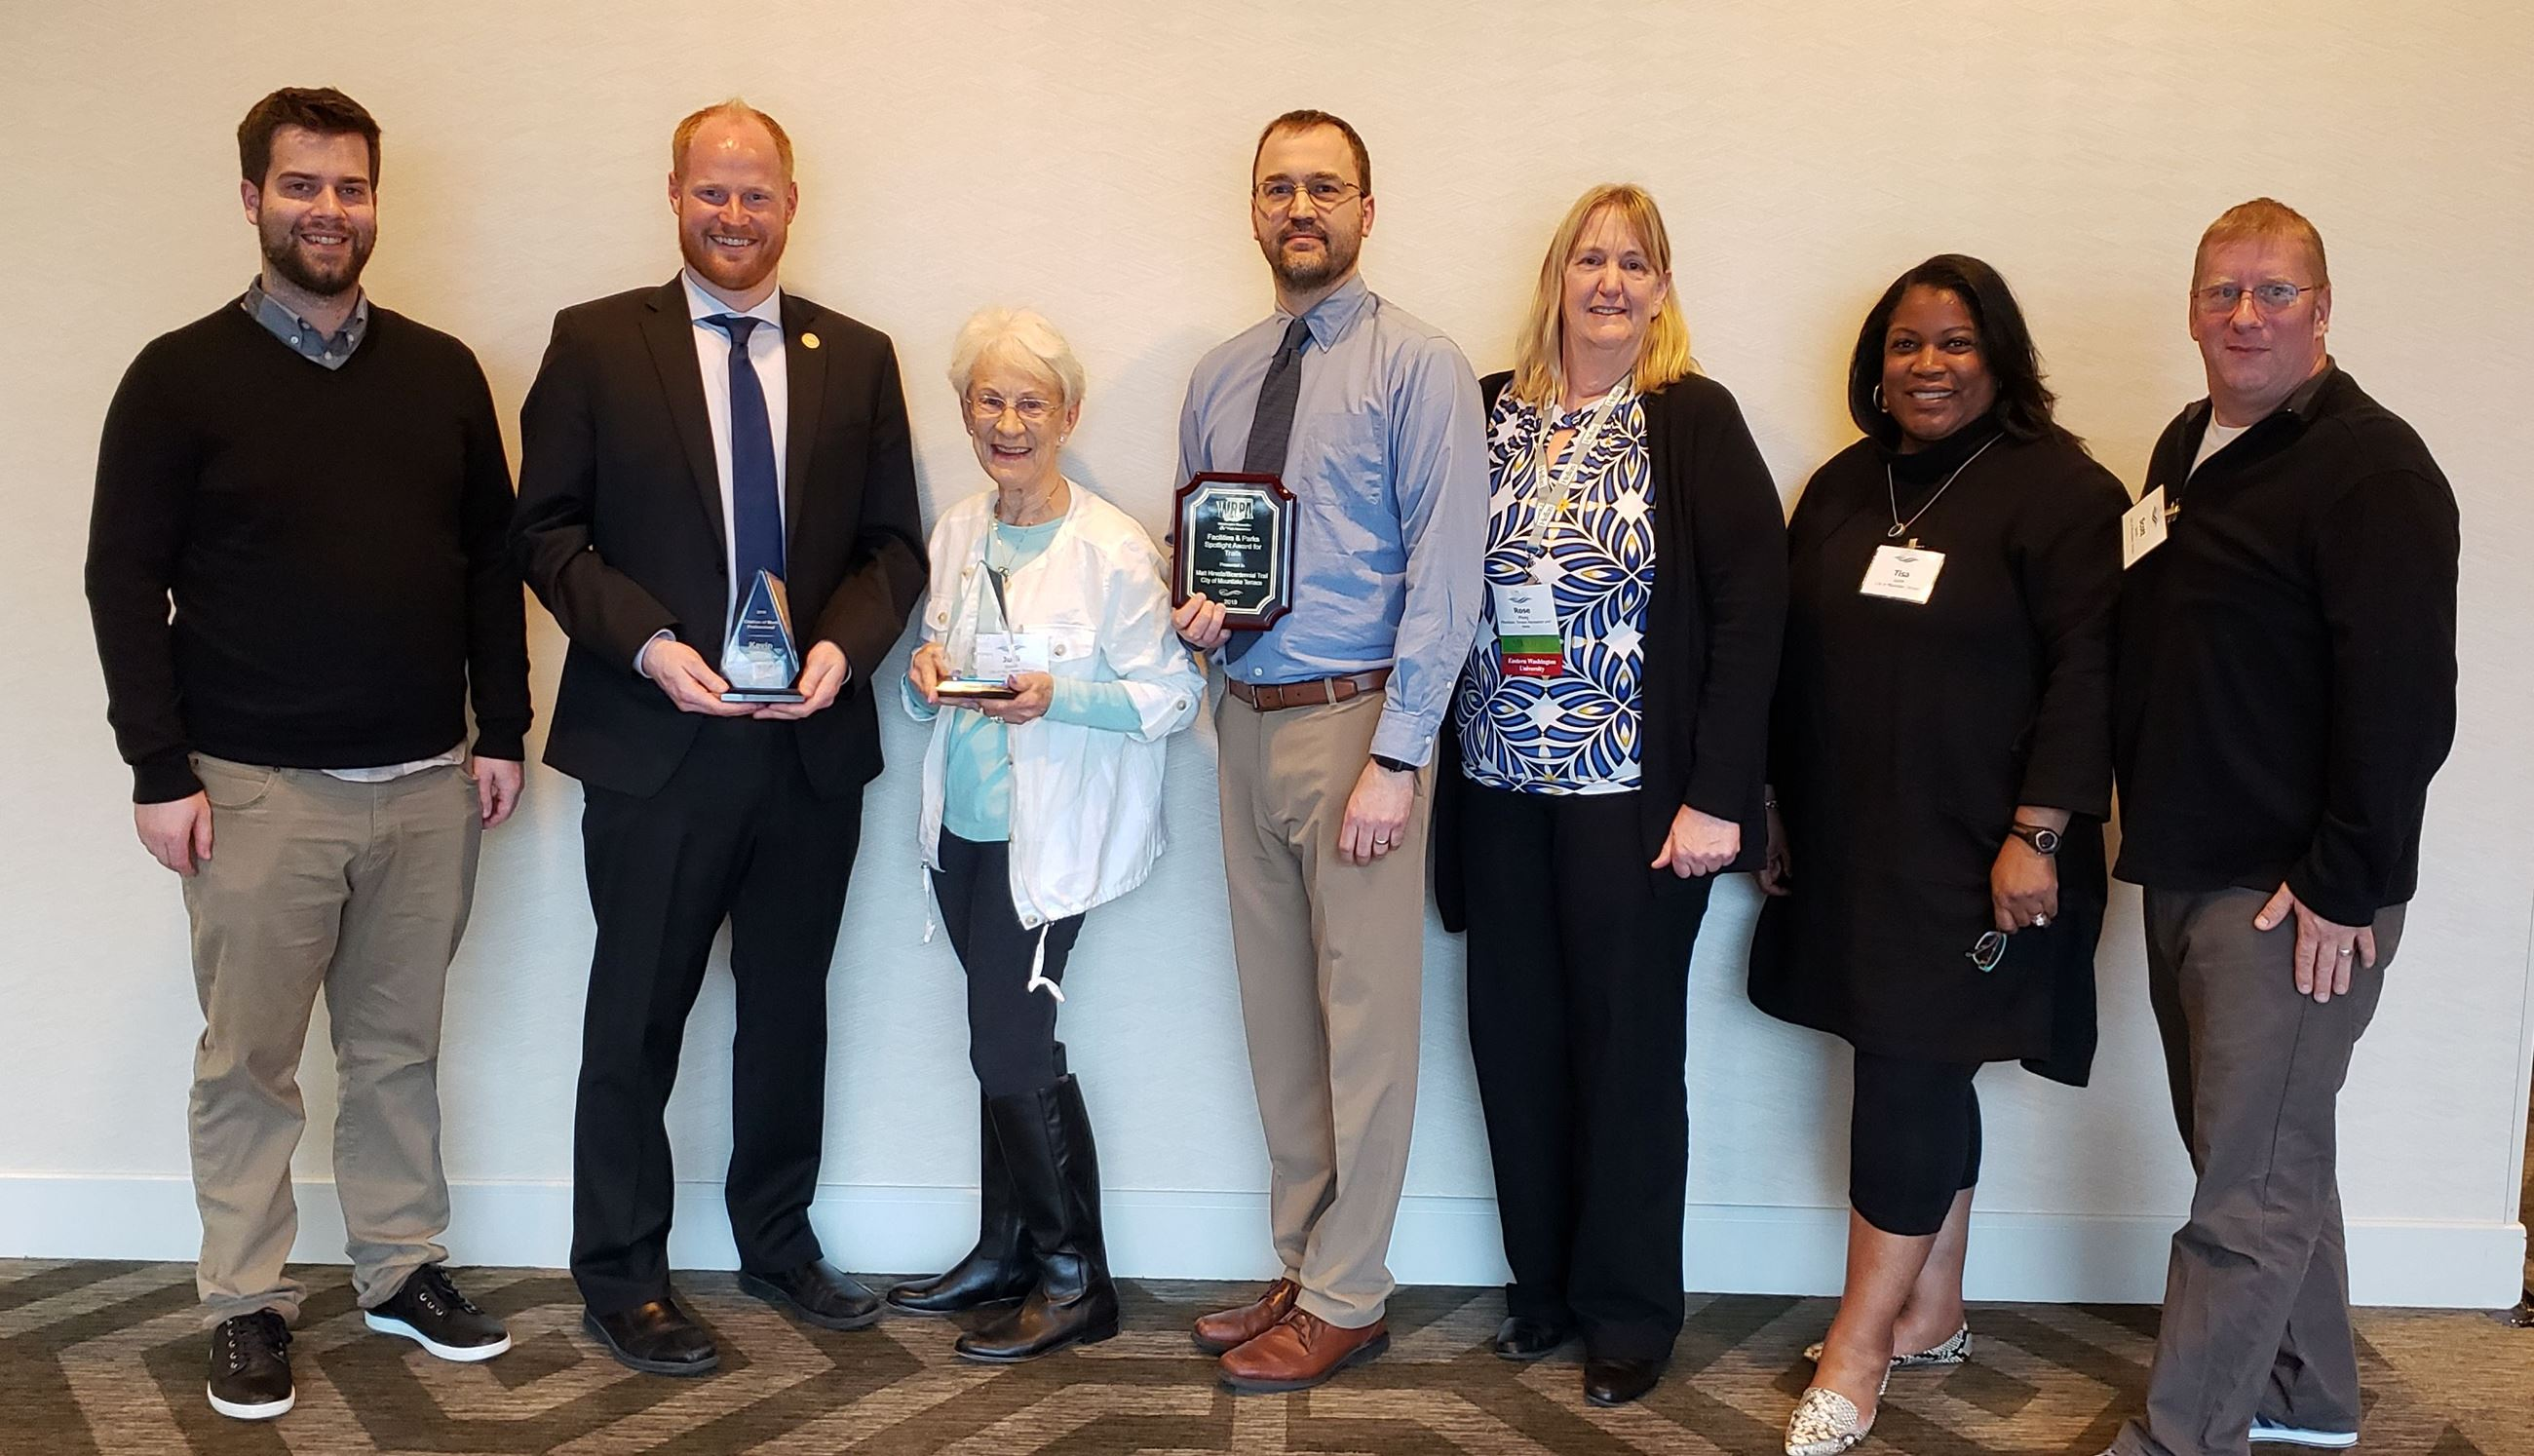 Washington Recreation & Parks Association Awards Recipients